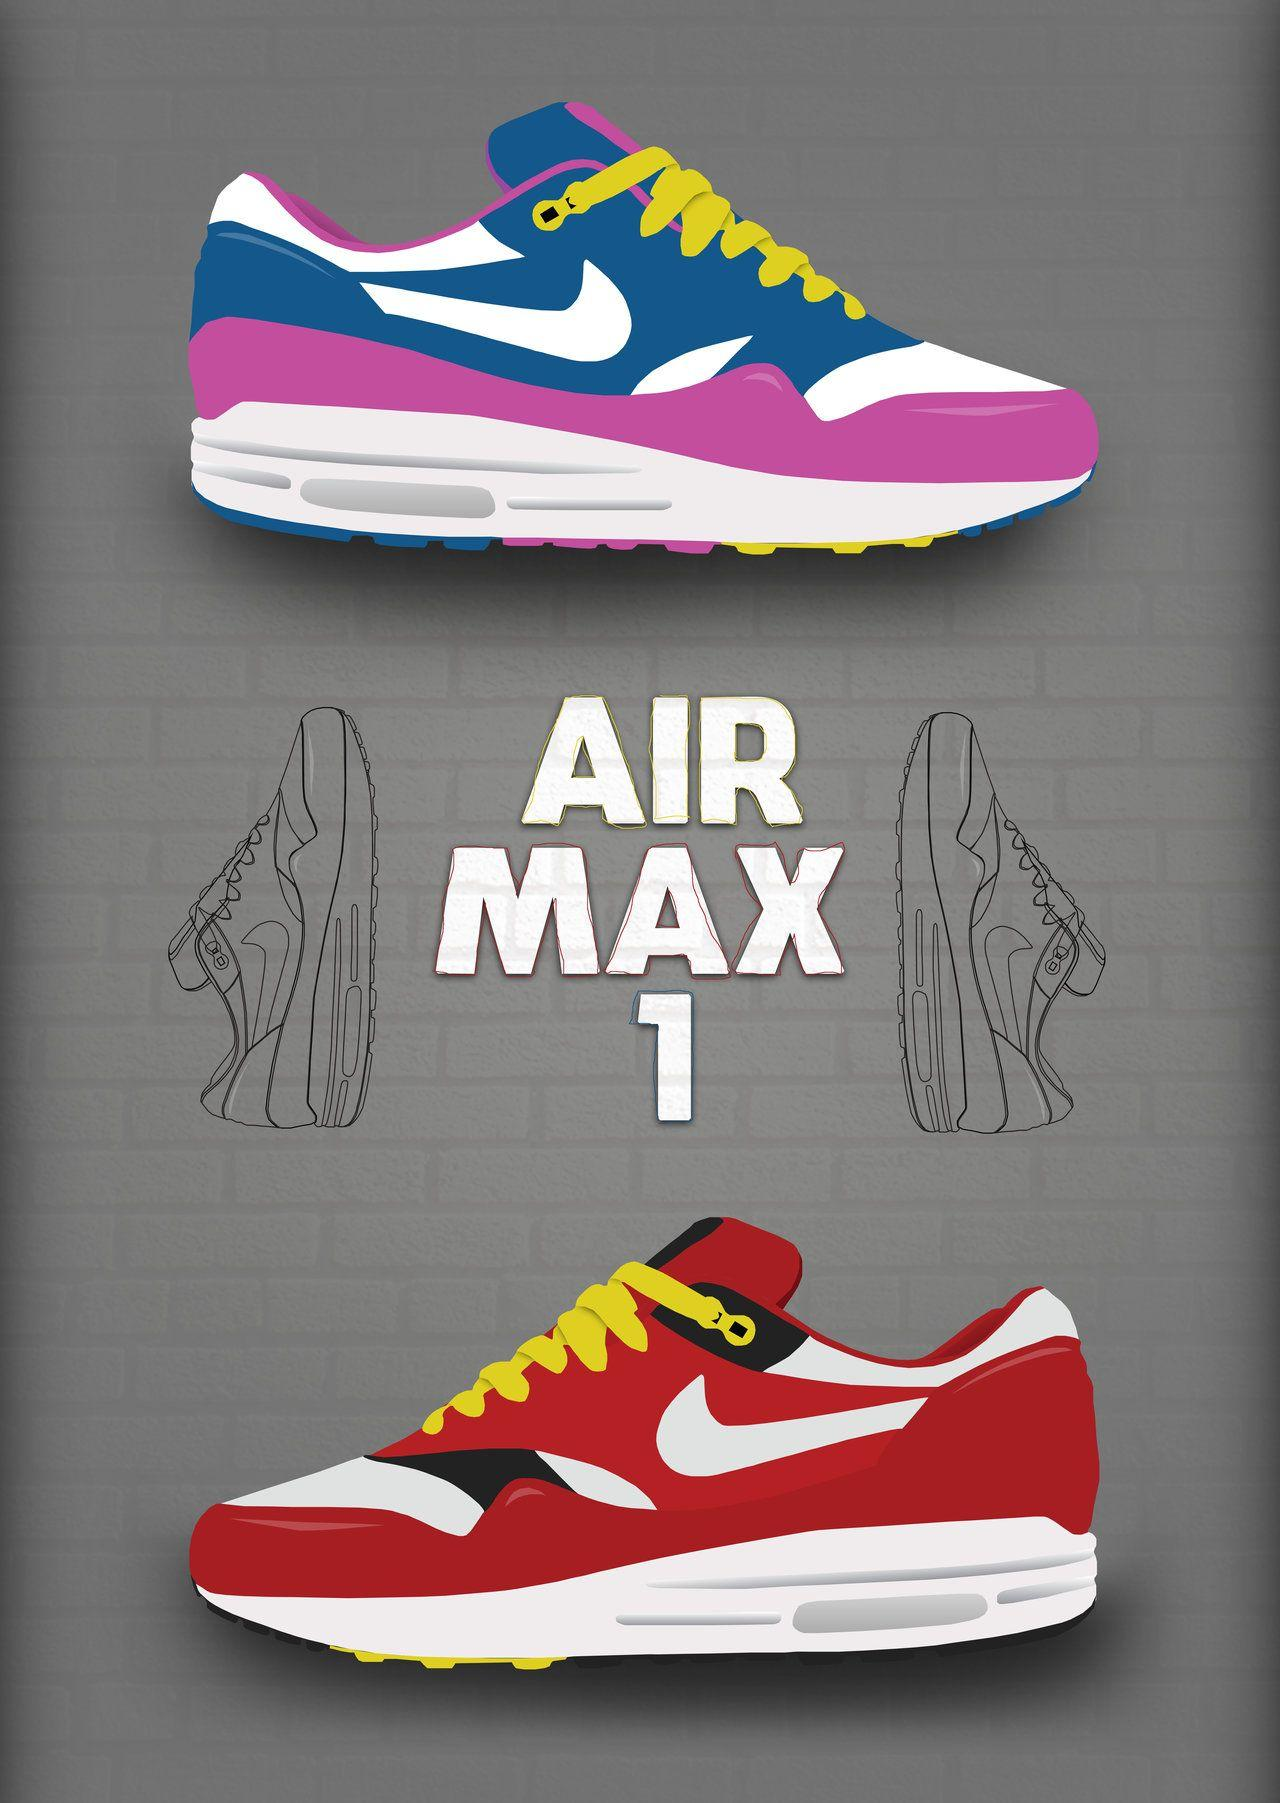 79da85e945 Nike air max 1 poster by Ghost-3 on DeviantArt